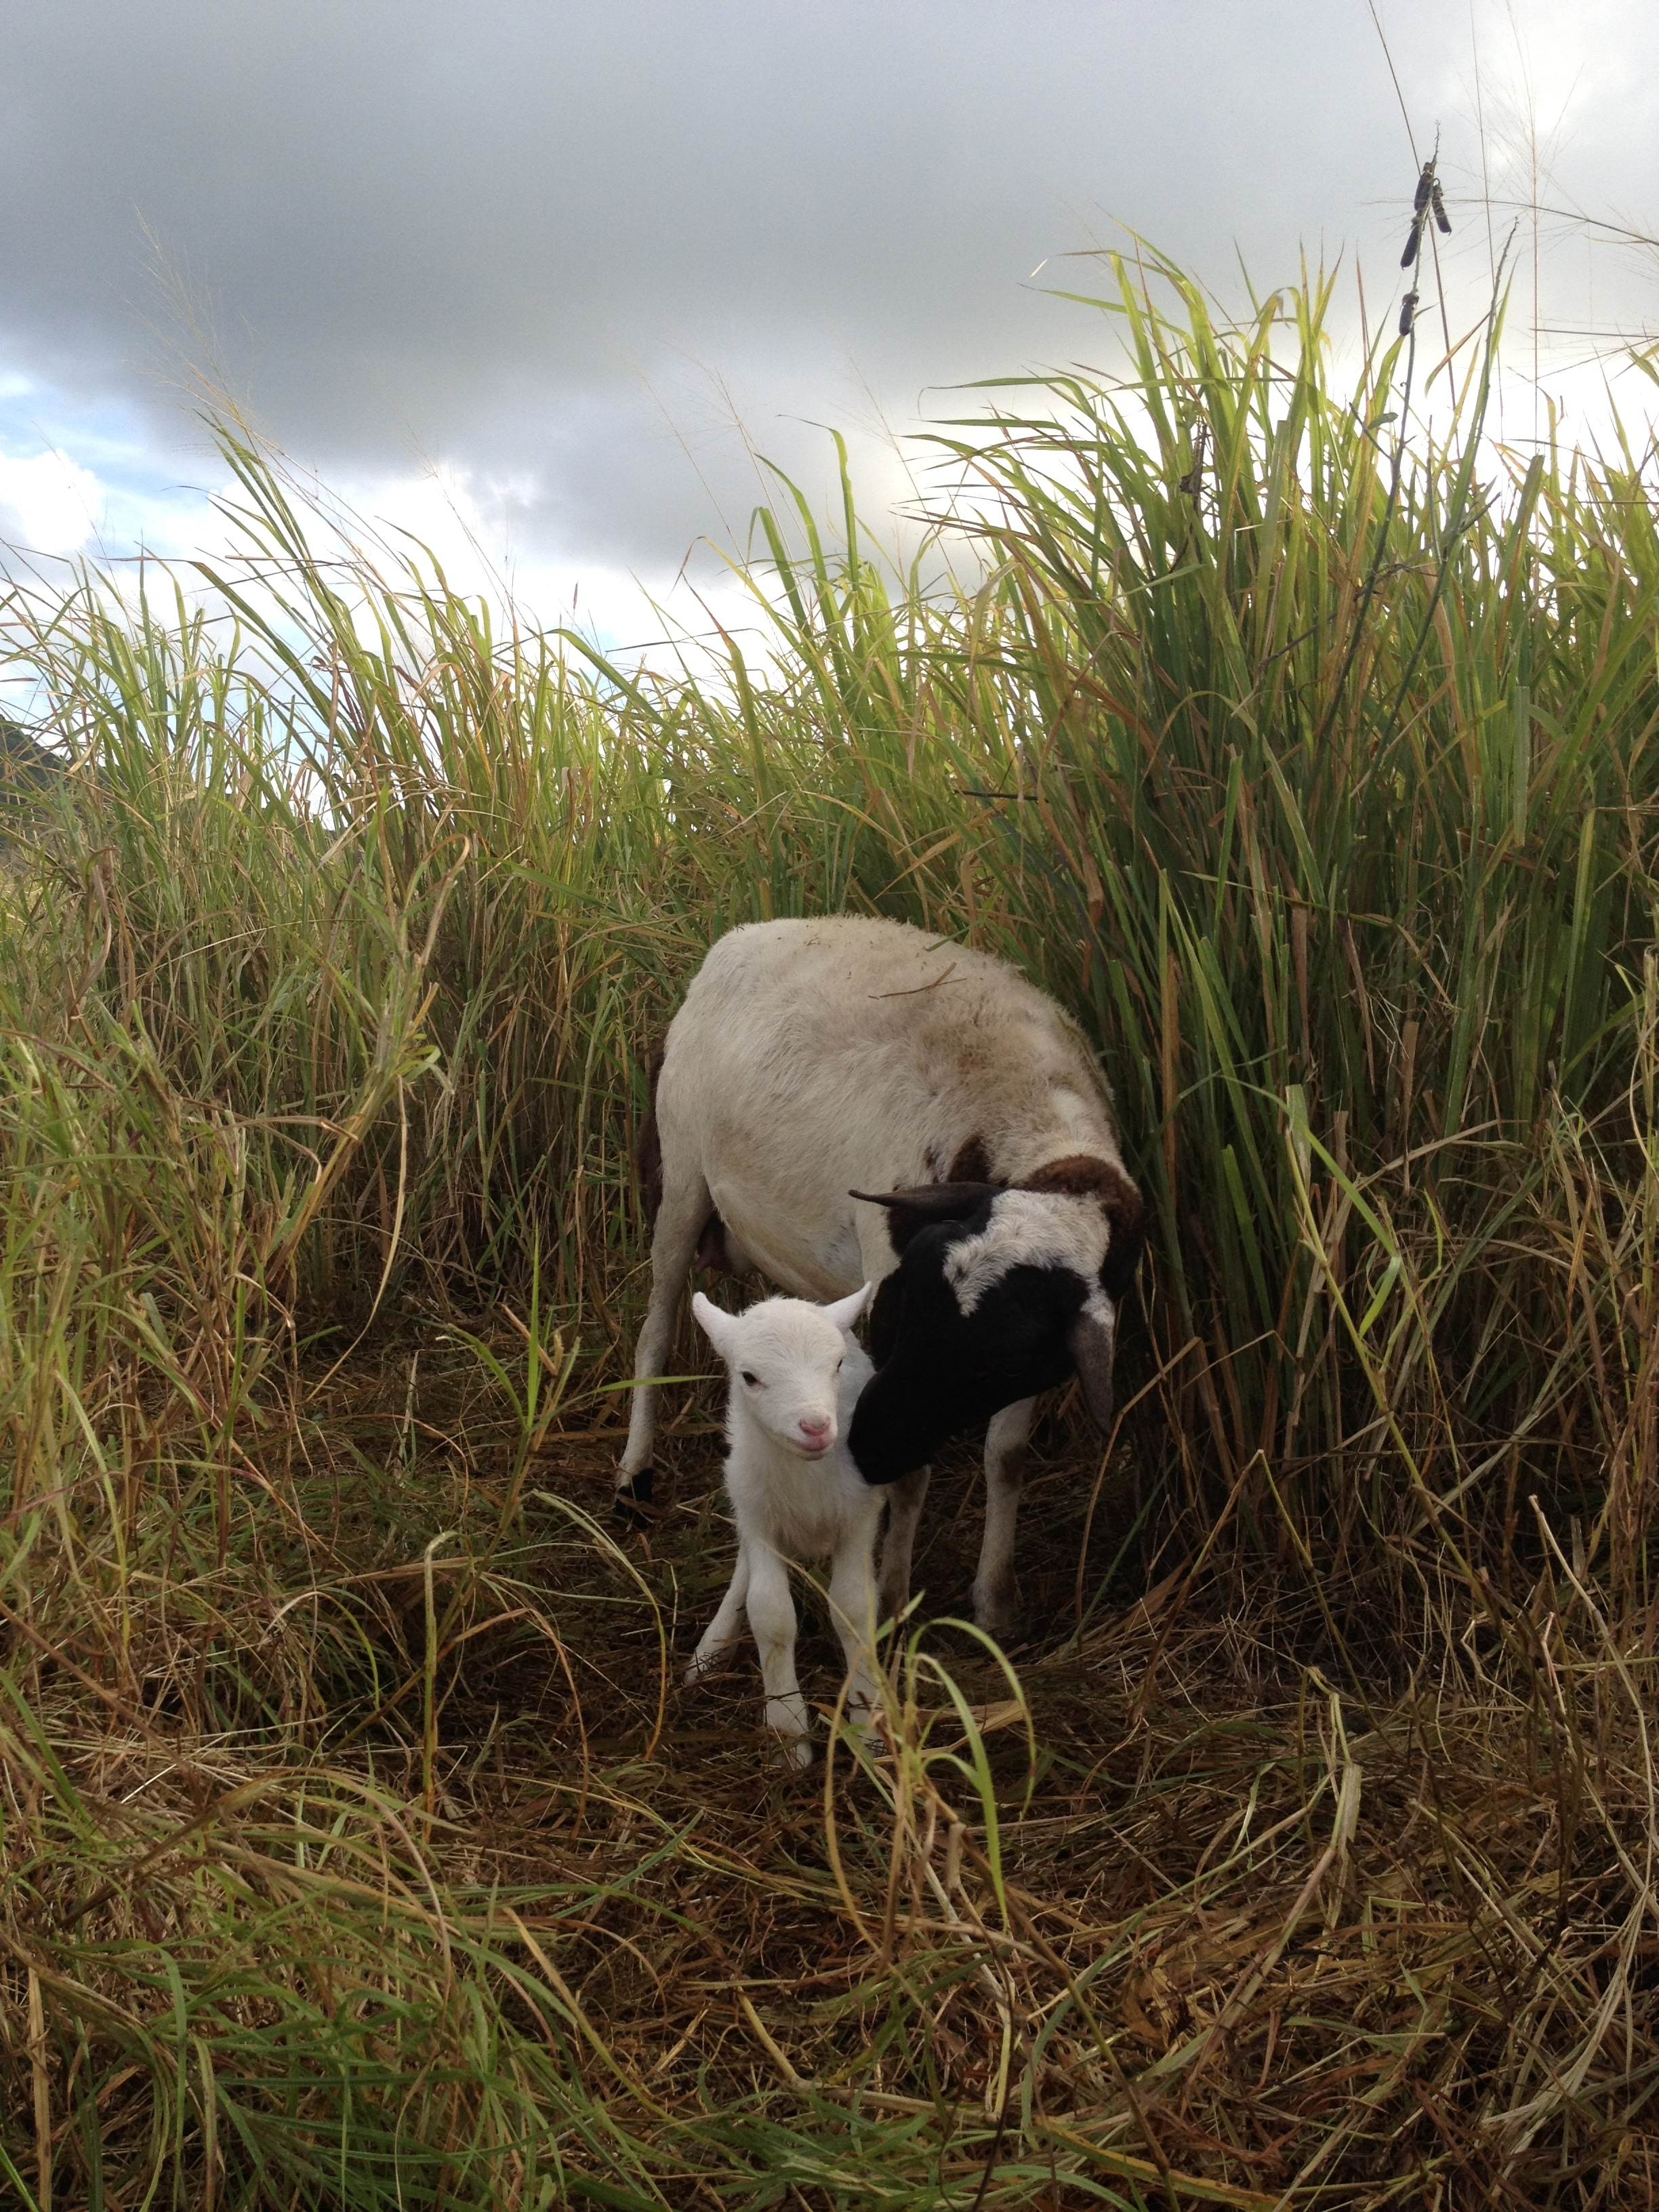 A day-old newborn white lamb stands next to its mother in a grassy pasture.